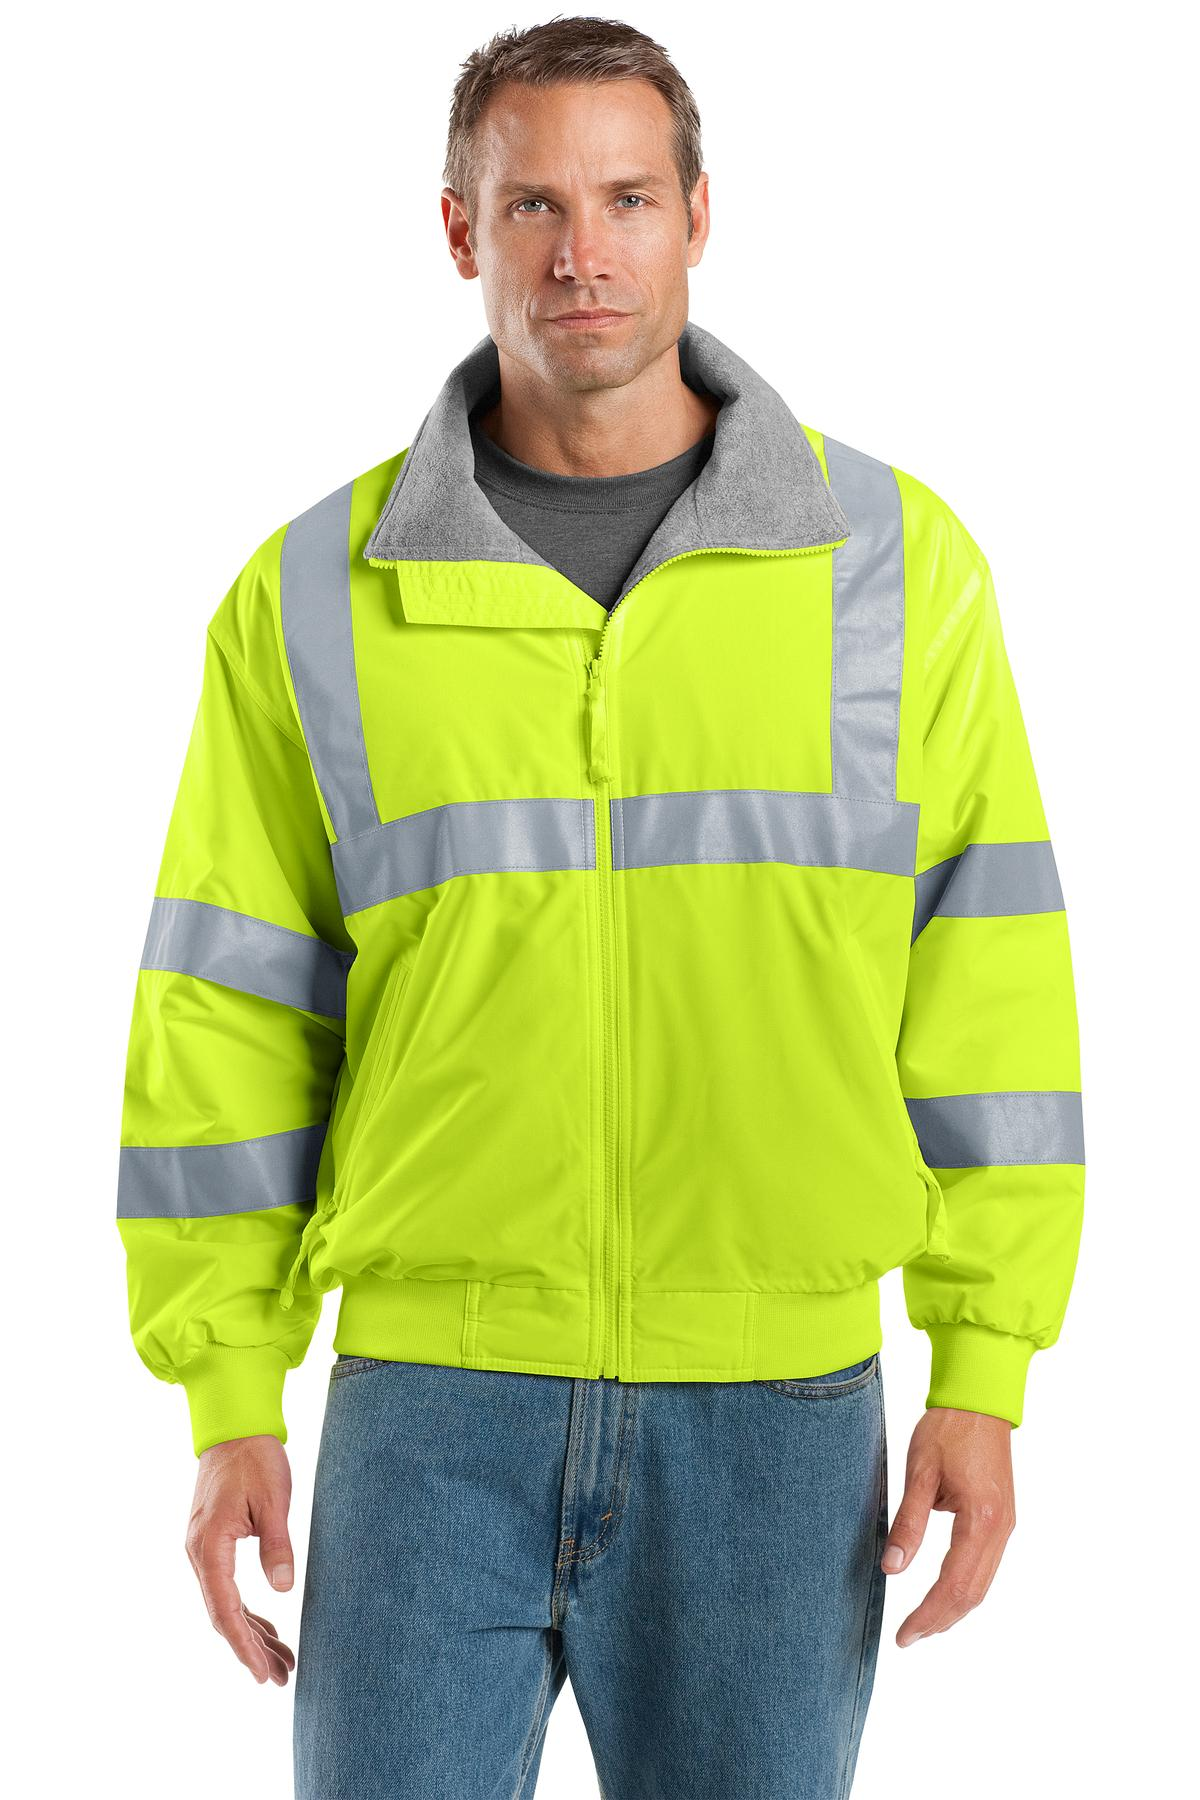 Outerwear-Insulated-Jackets-17